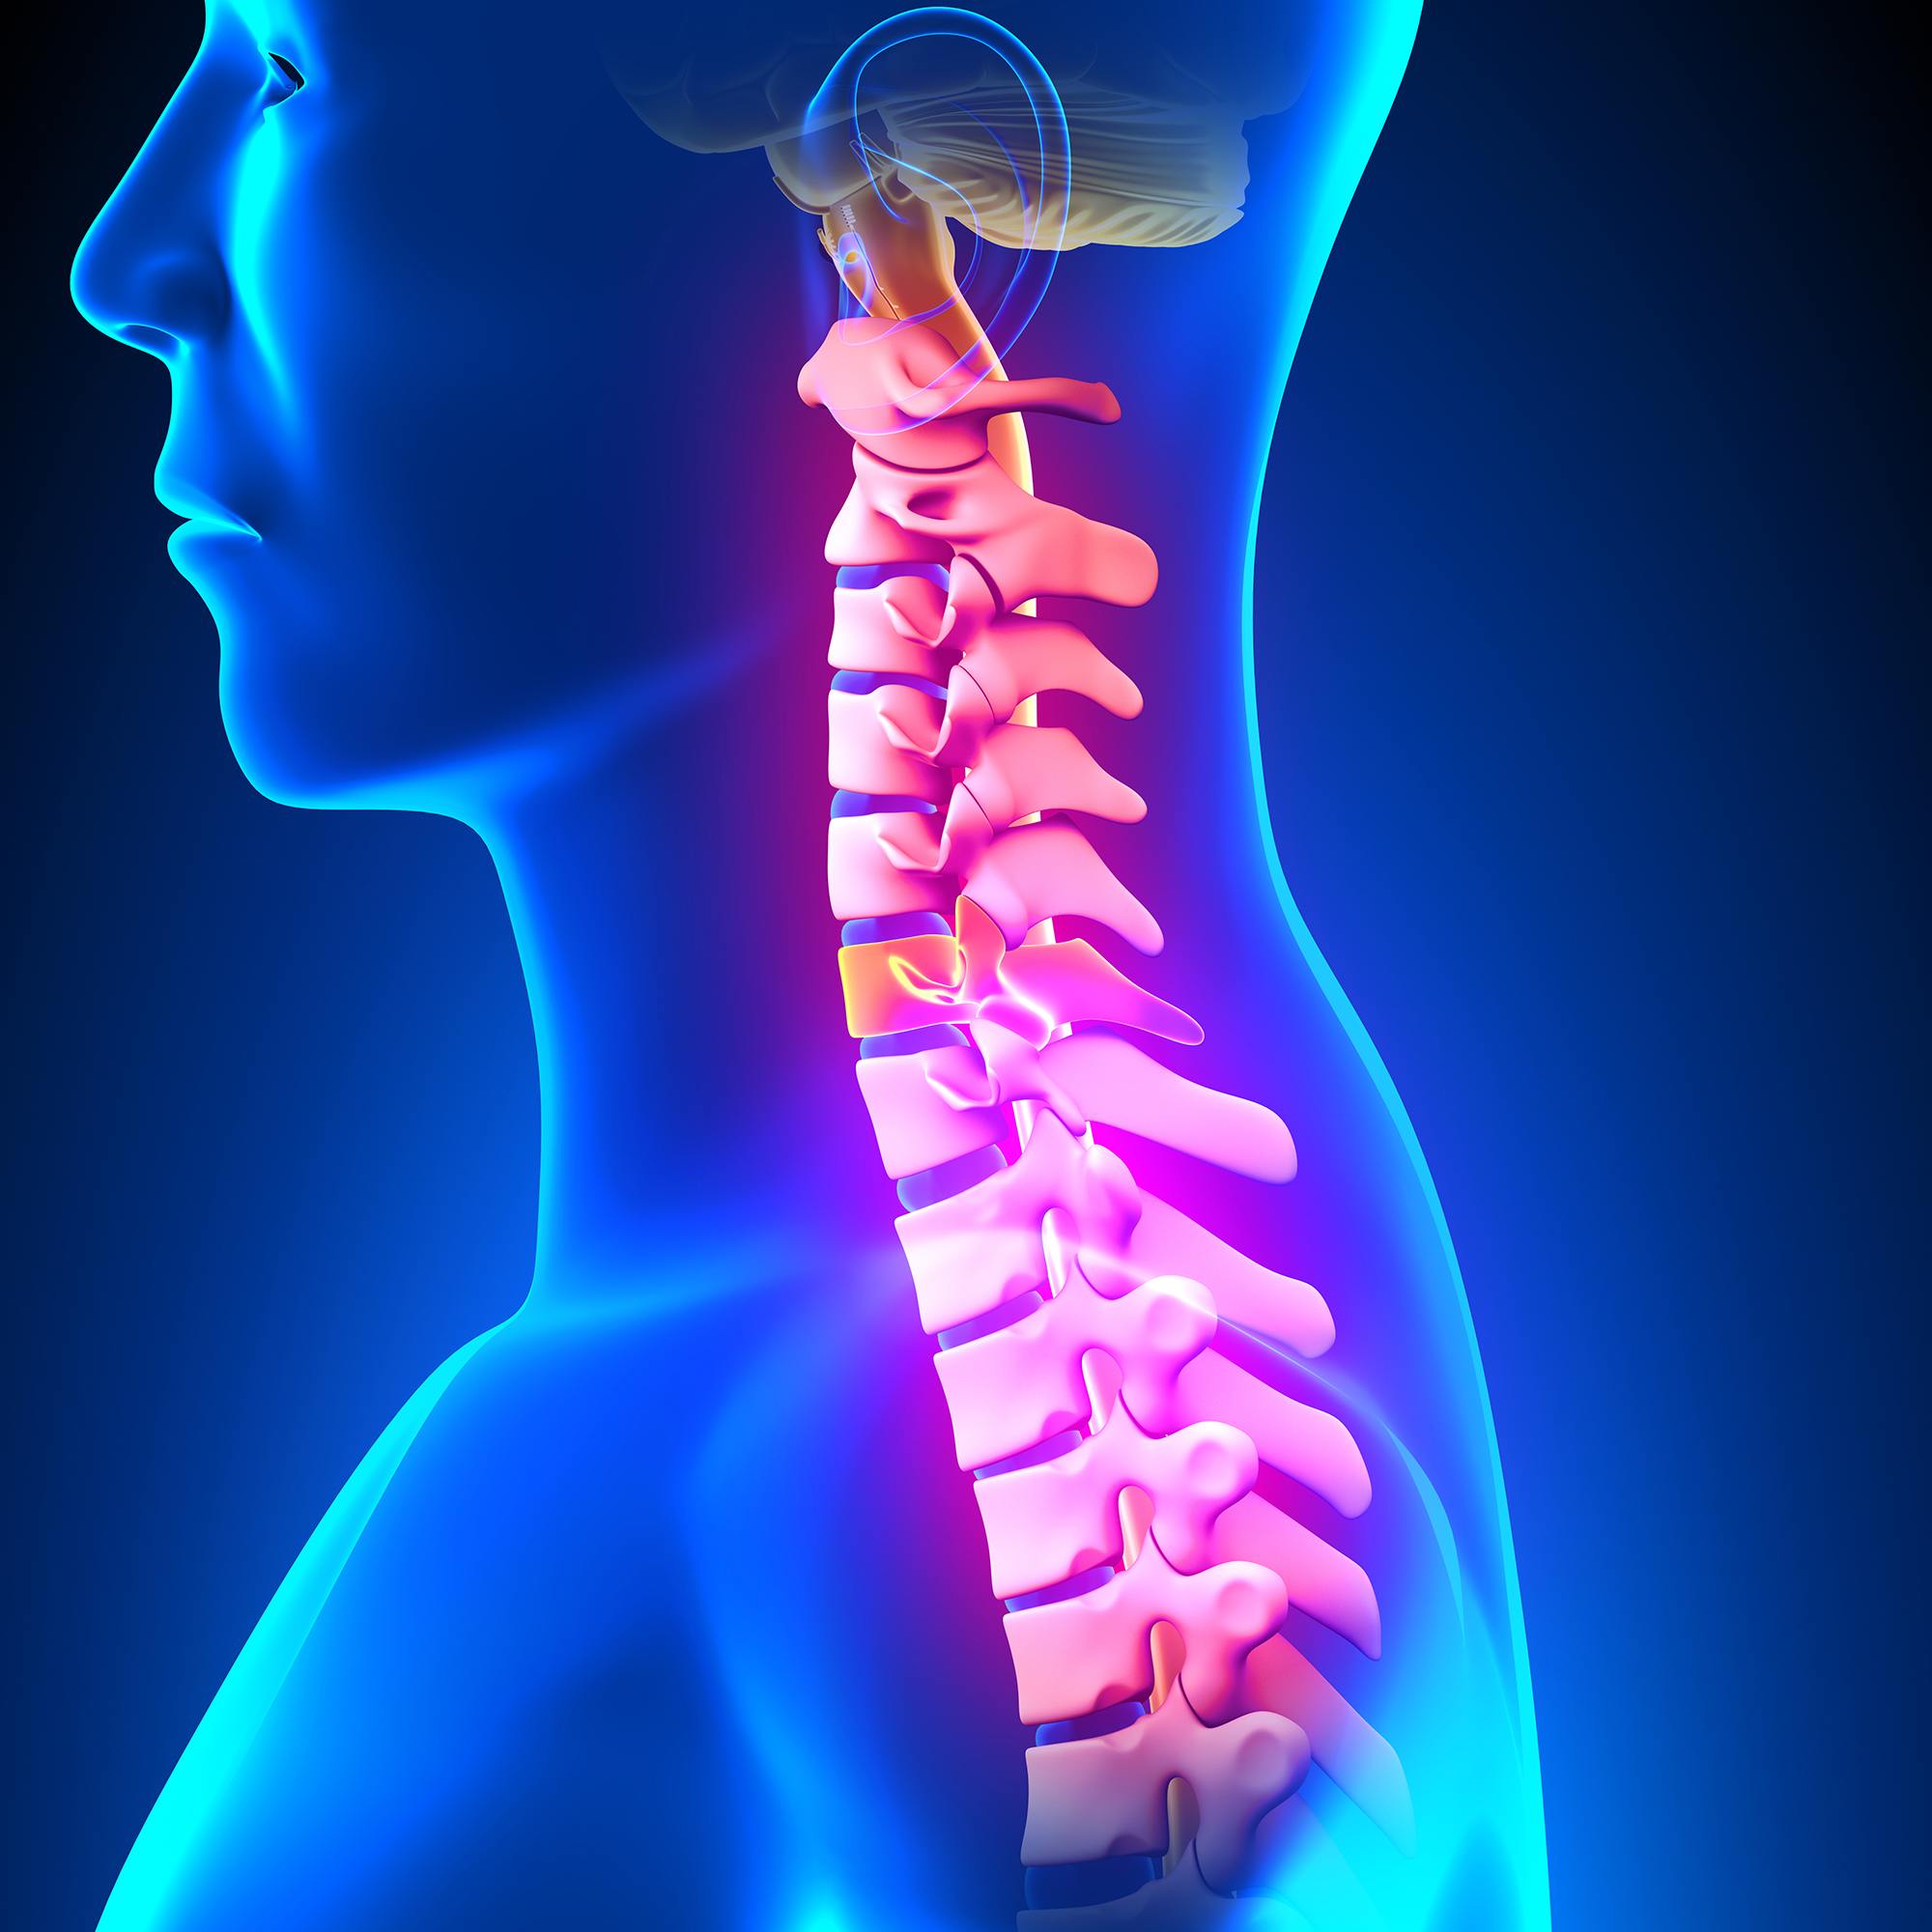 Neck Pain caused by Auto Accident